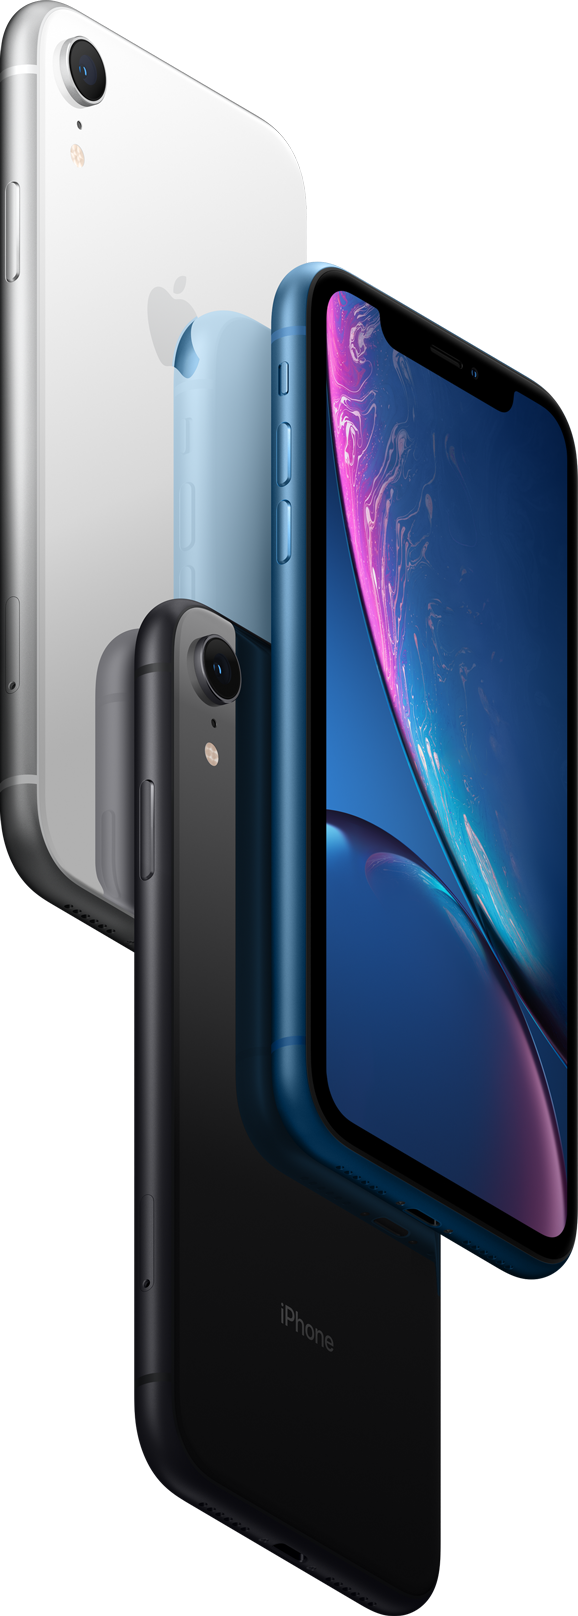 iPhone XR has an advanced LCD screen.